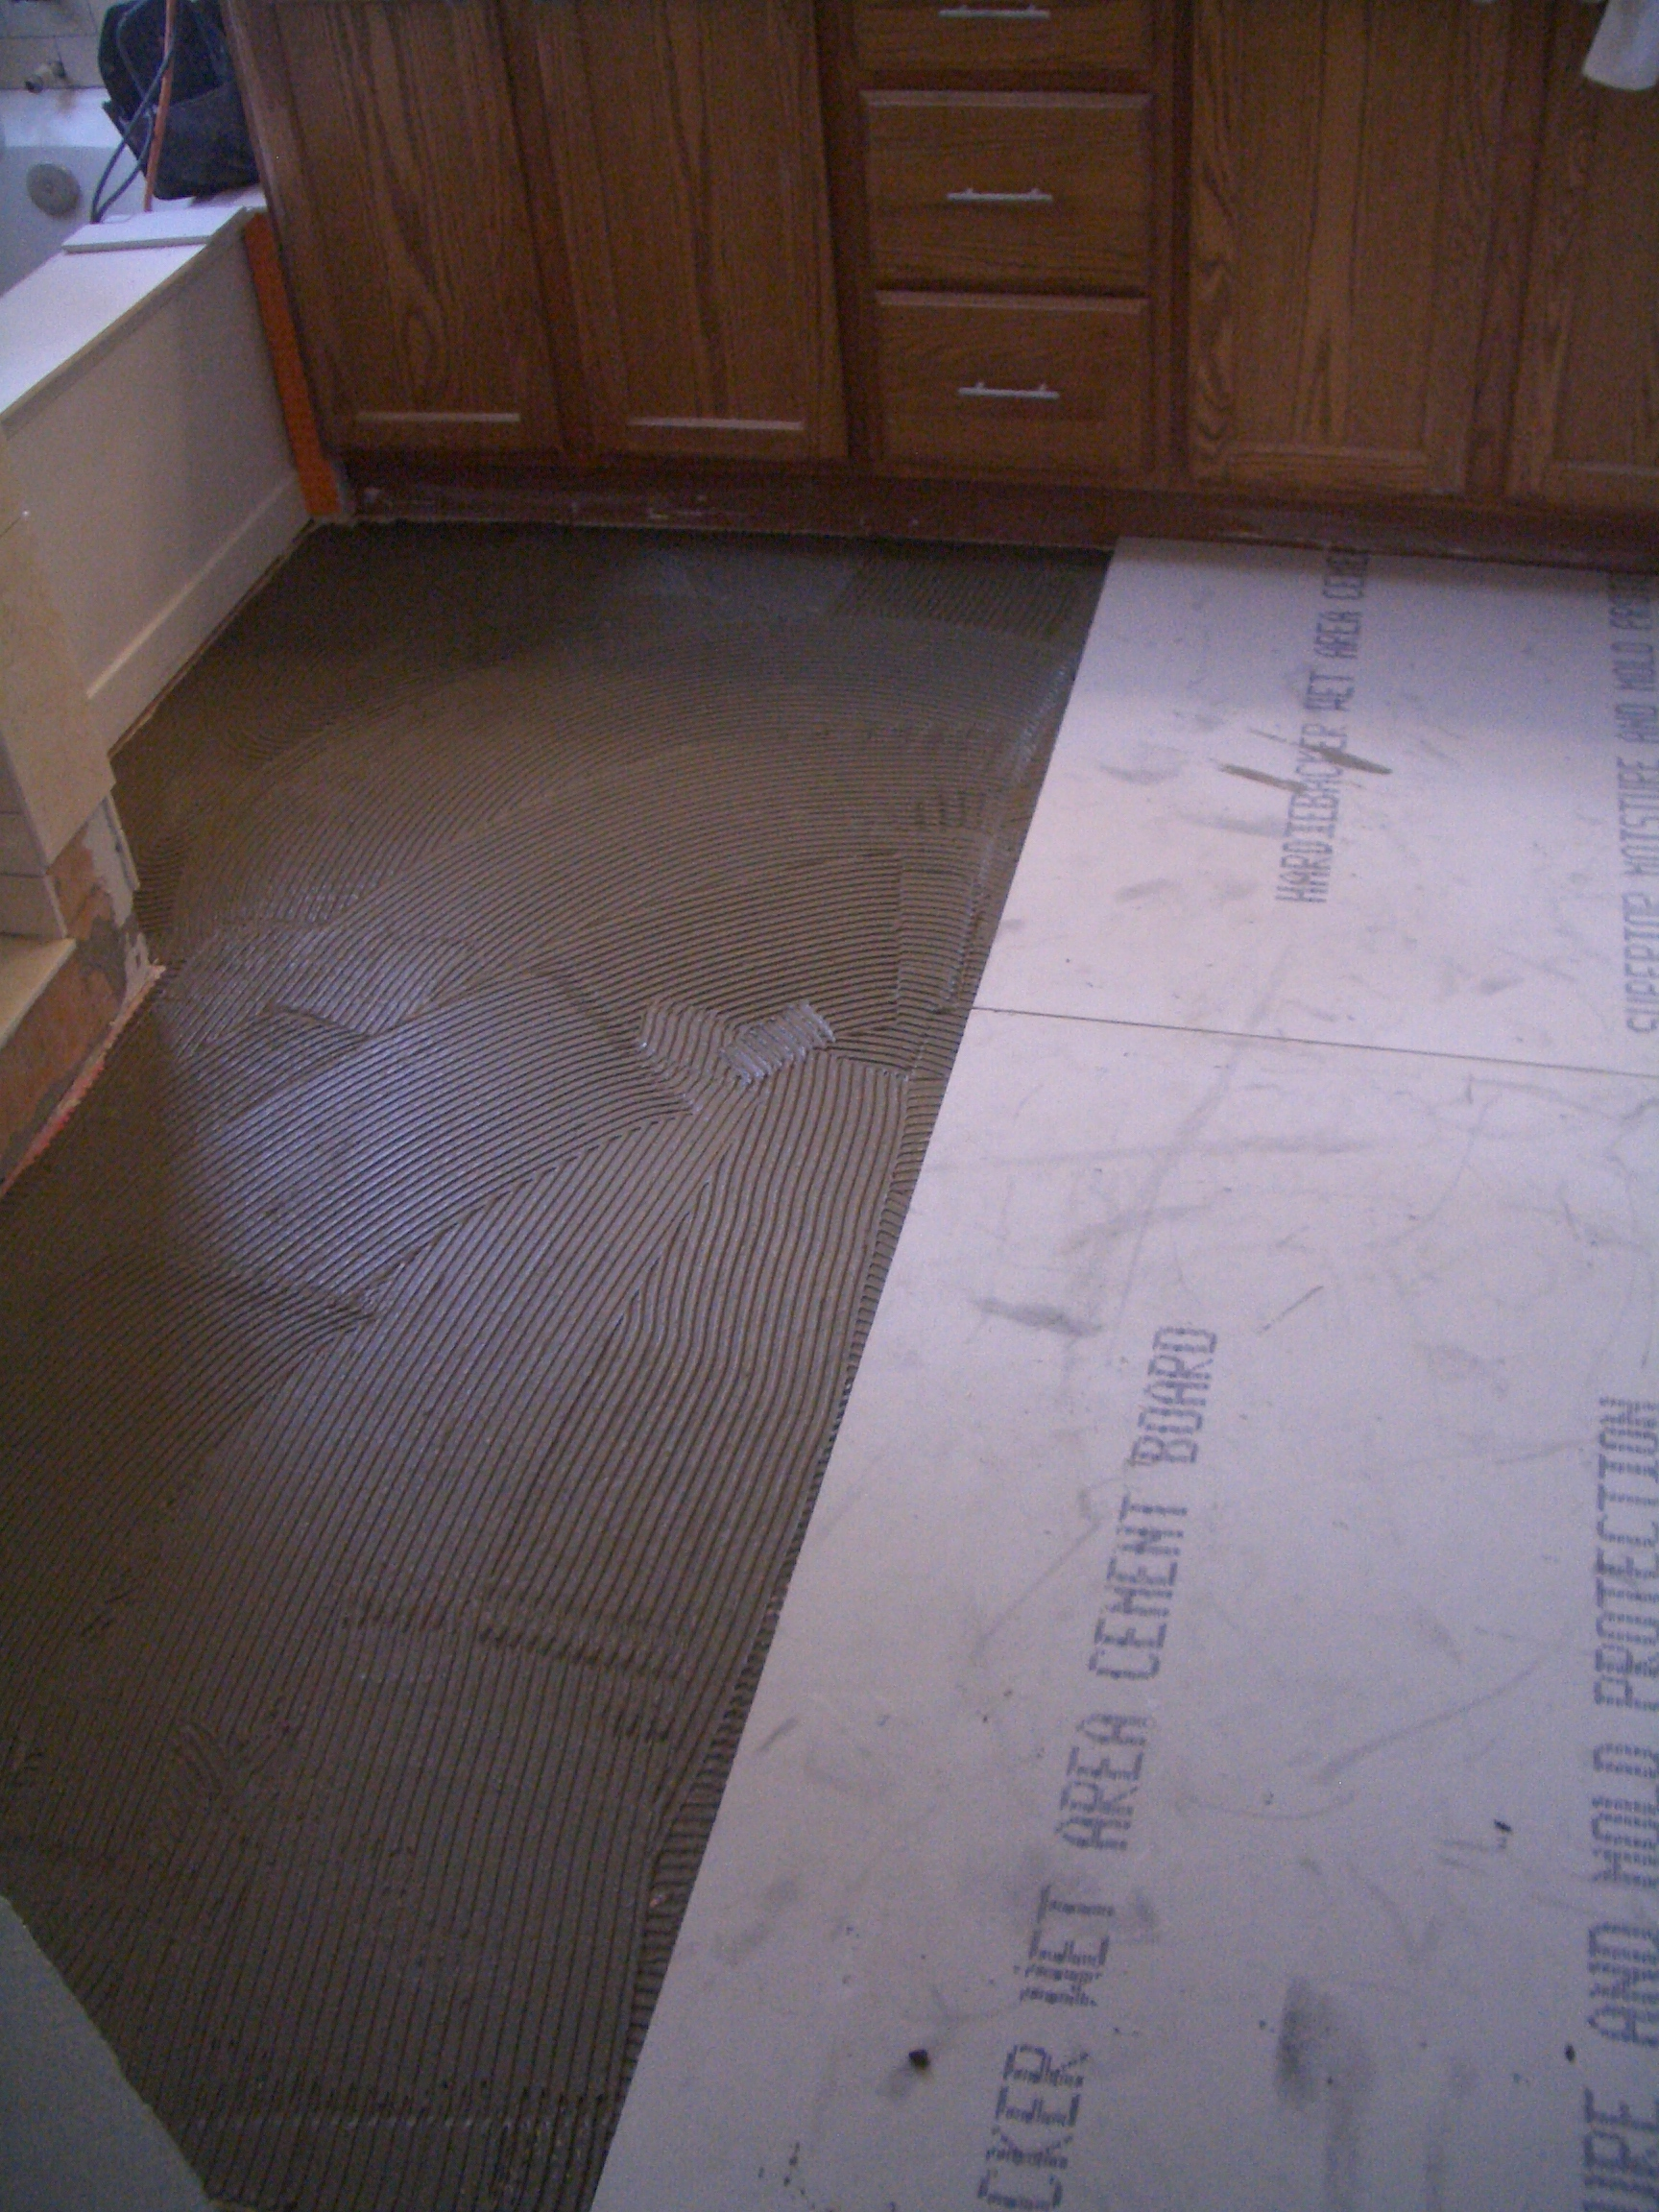 To install cement backerboard for floor tile installing thinset beneath backerboards dailygadgetfo Image collections